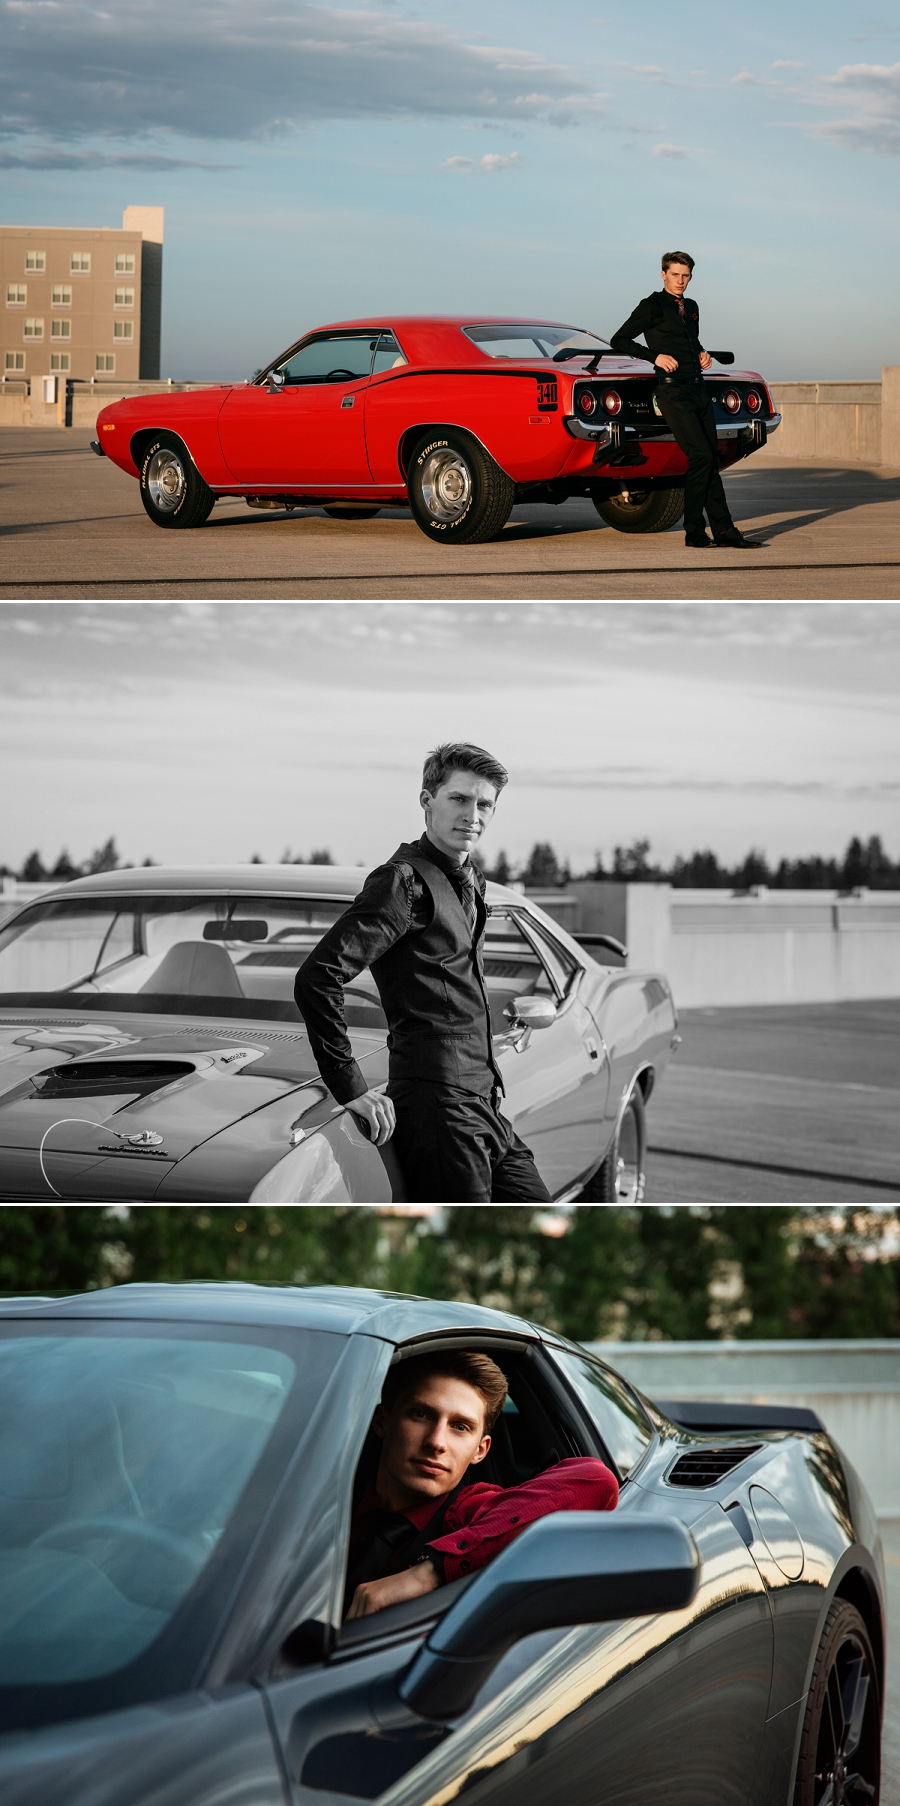 saskatoon graduation photos with classic cars